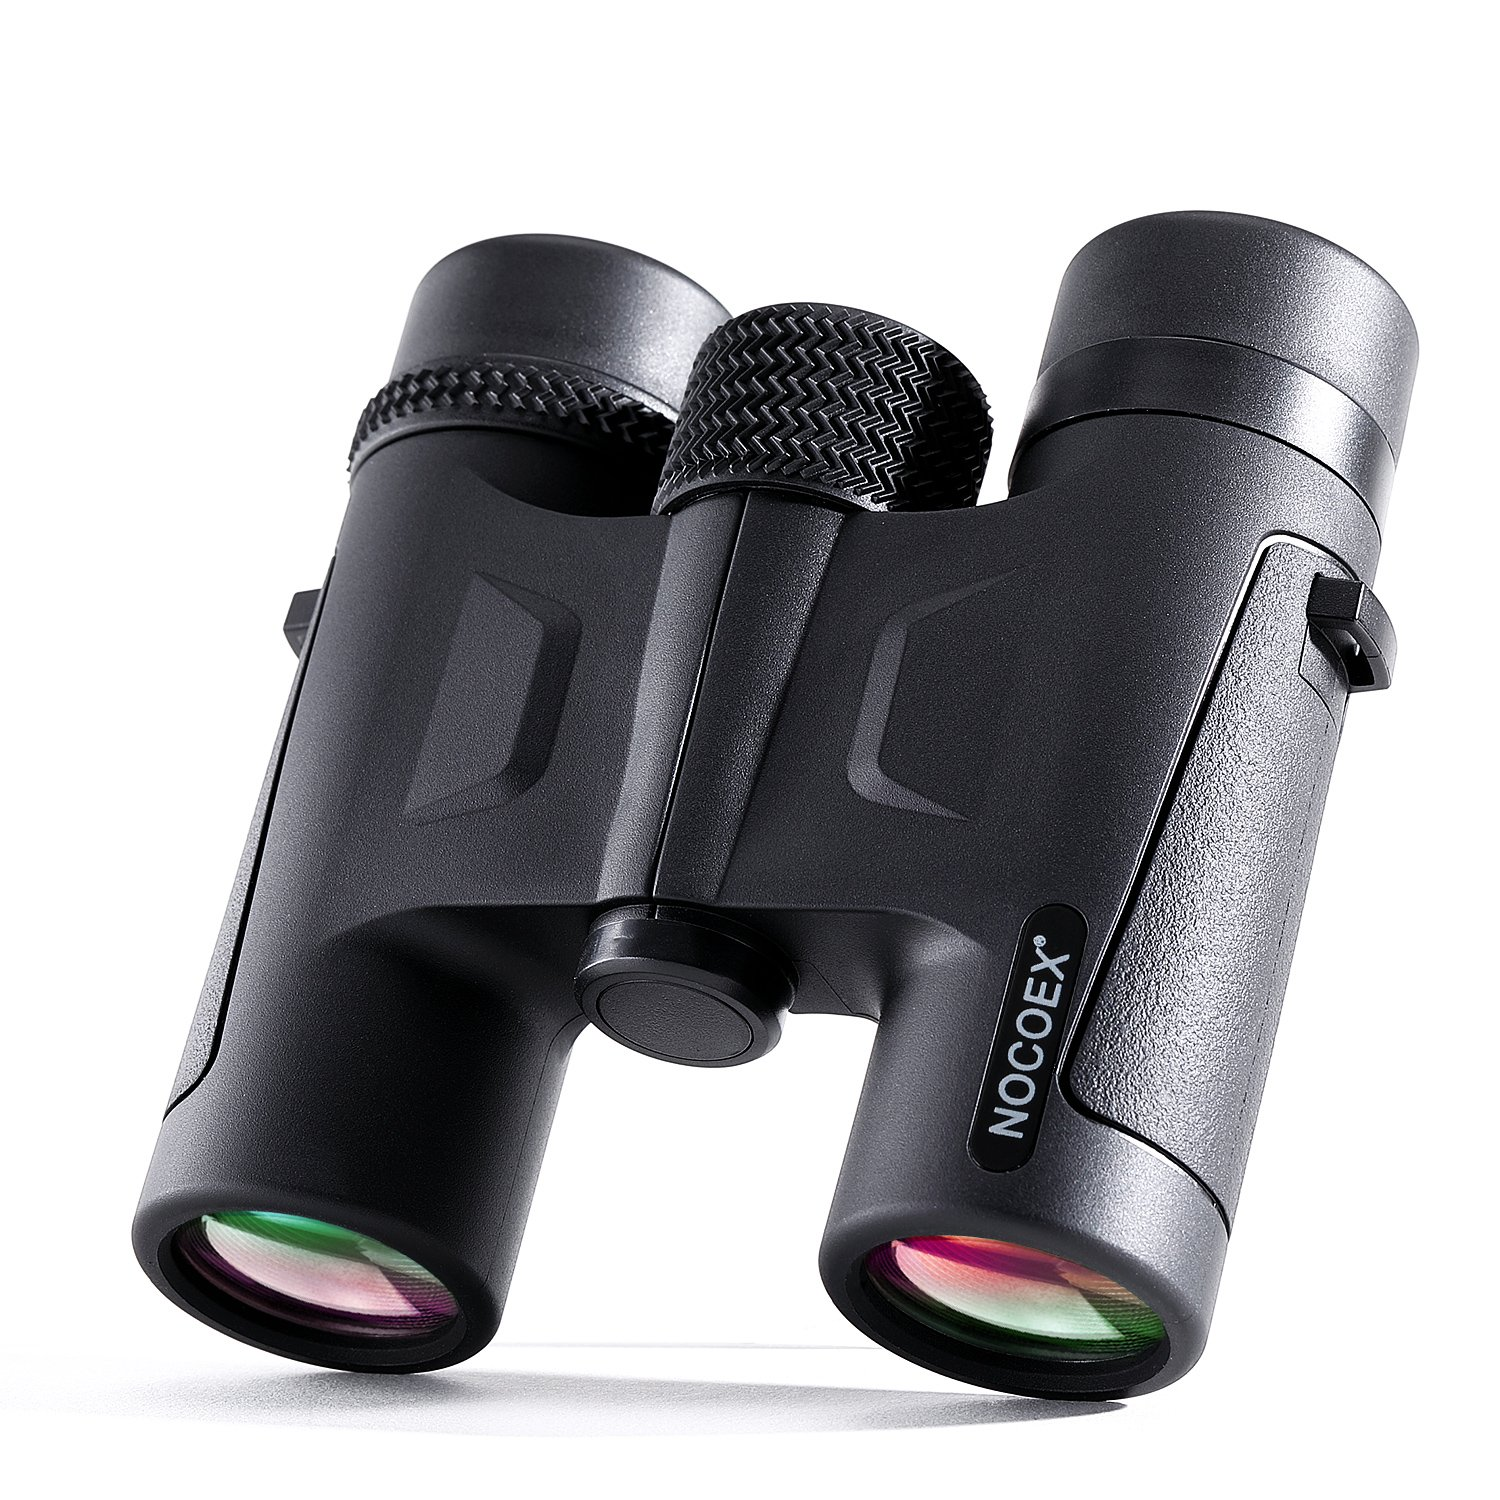 NOCOEX 10X26 Mini Binoculars Compact, Roof Prism HD Optics, for Bird Watching, Travel, Concert, Sports EX6119